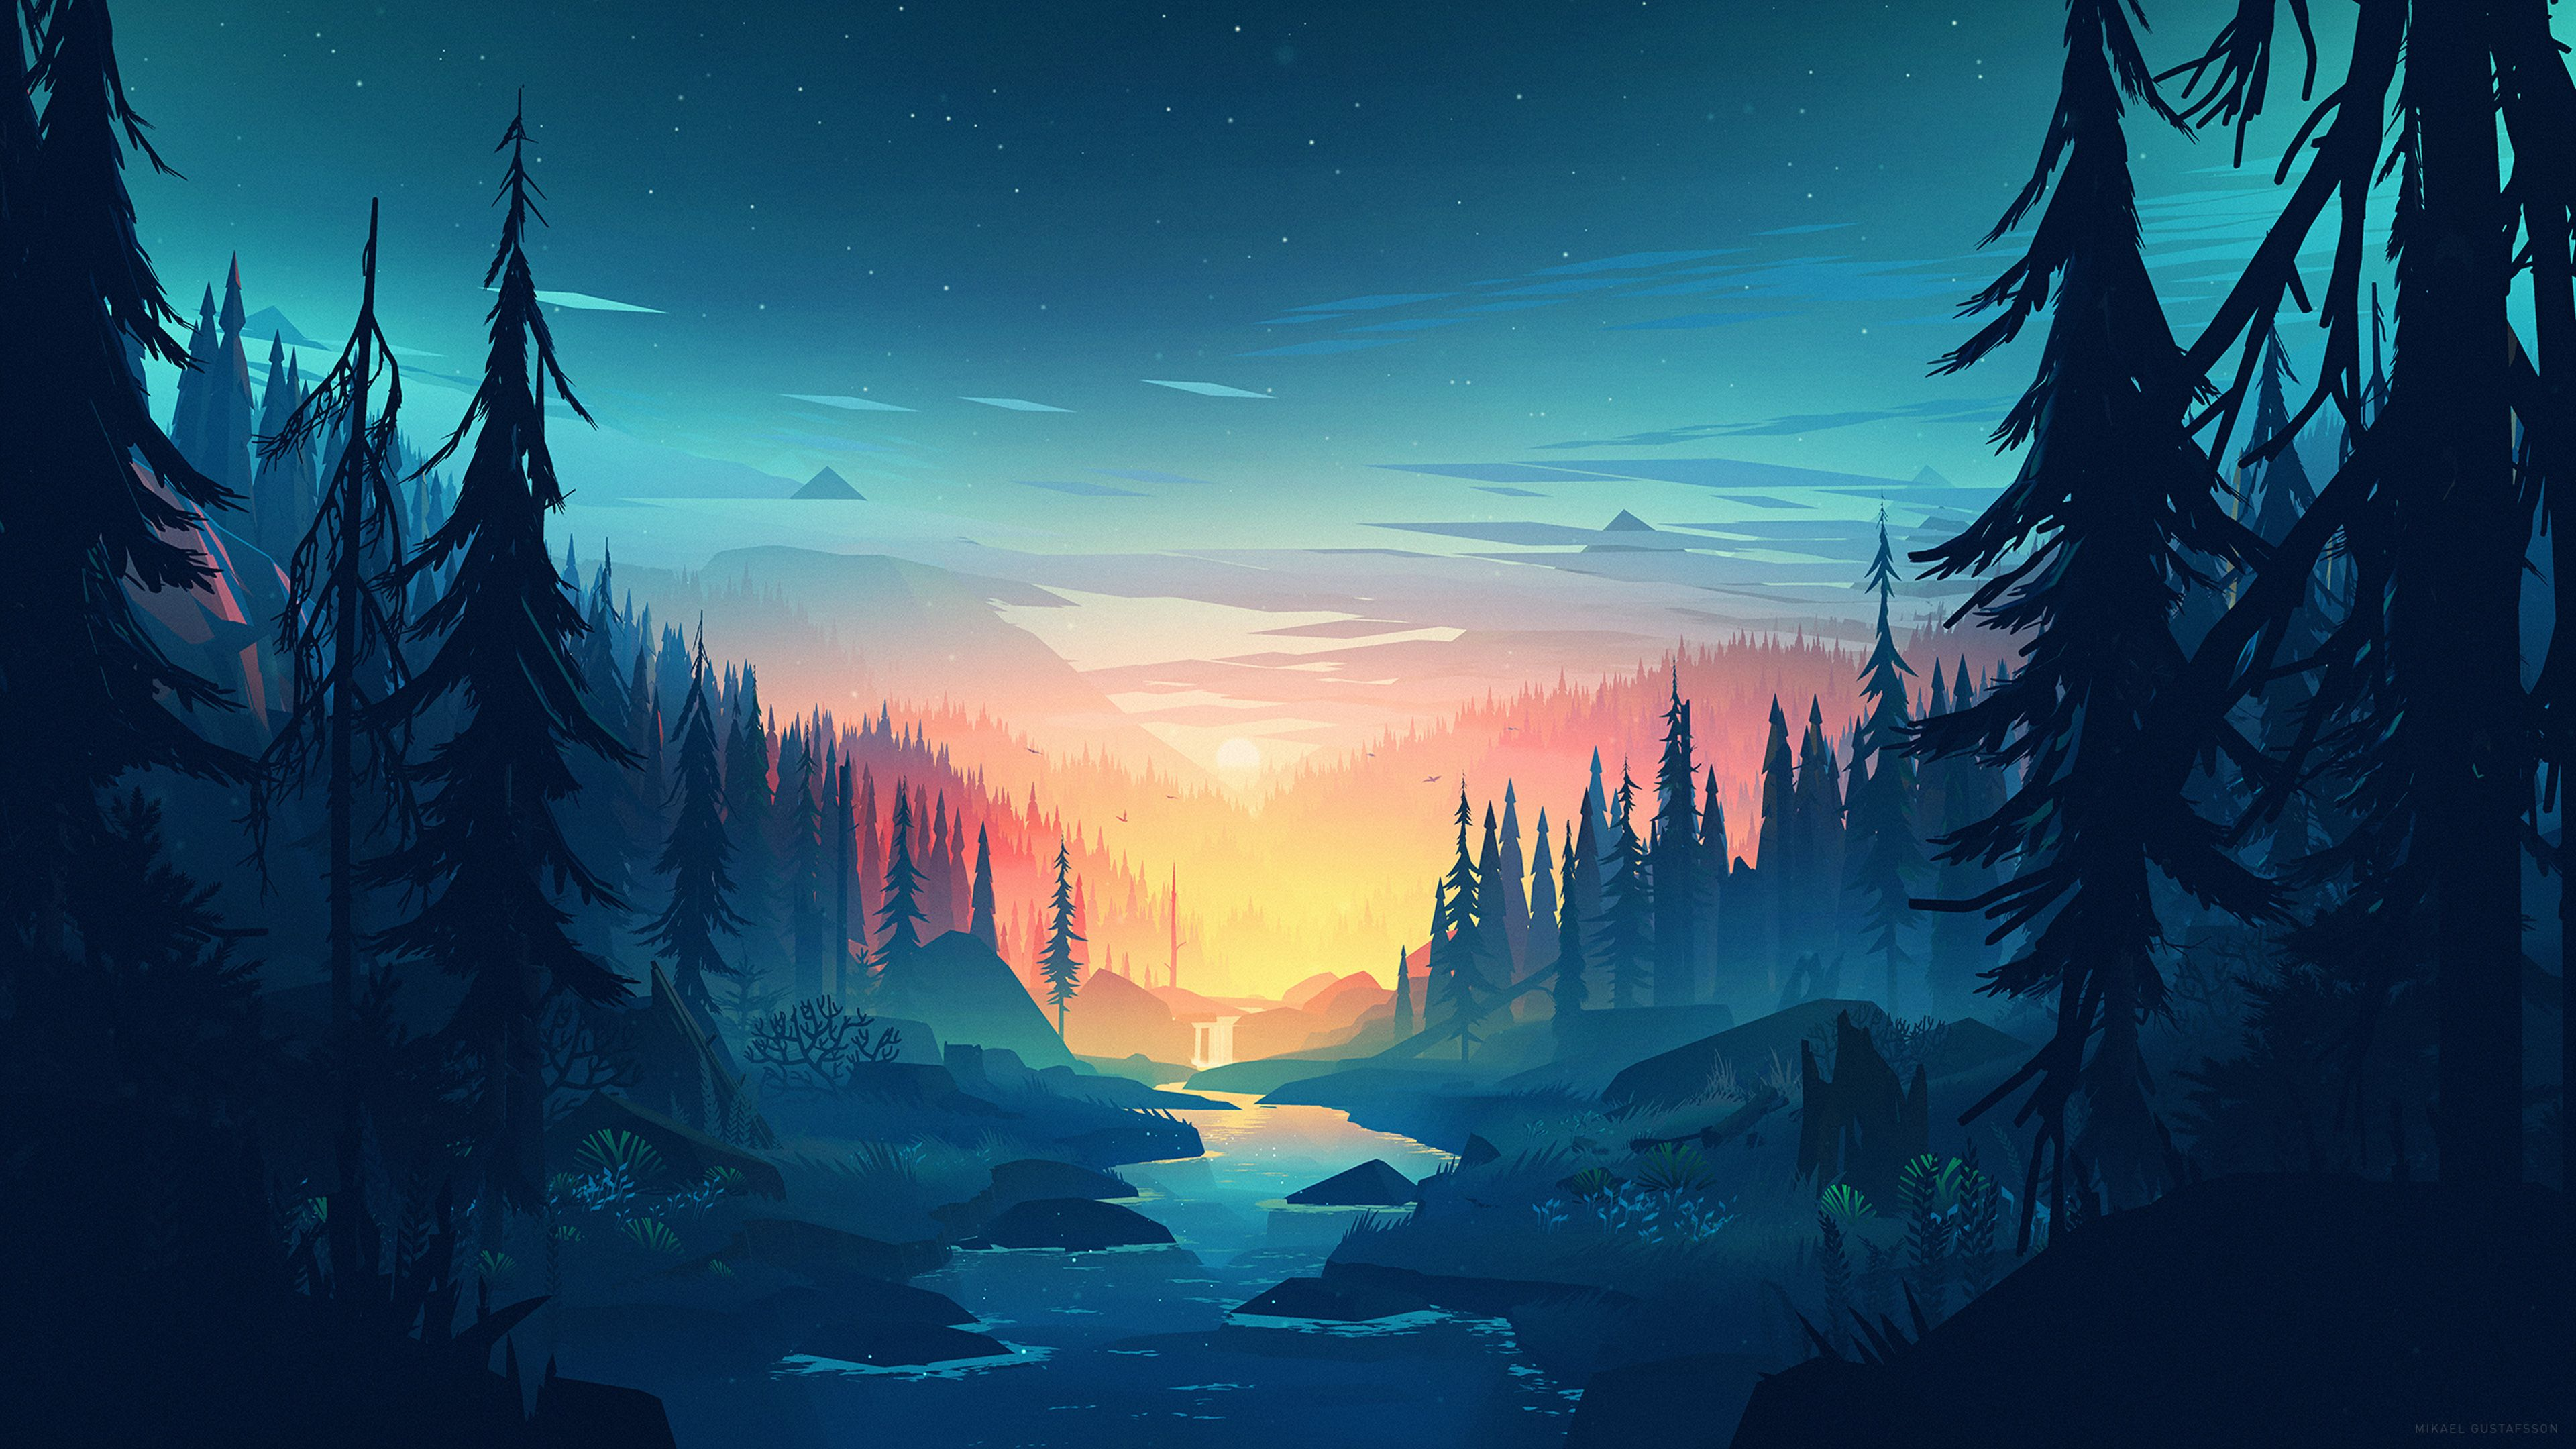 small memory lpjpg 38402160 Scenery wallpaper Landscape 3840x2160